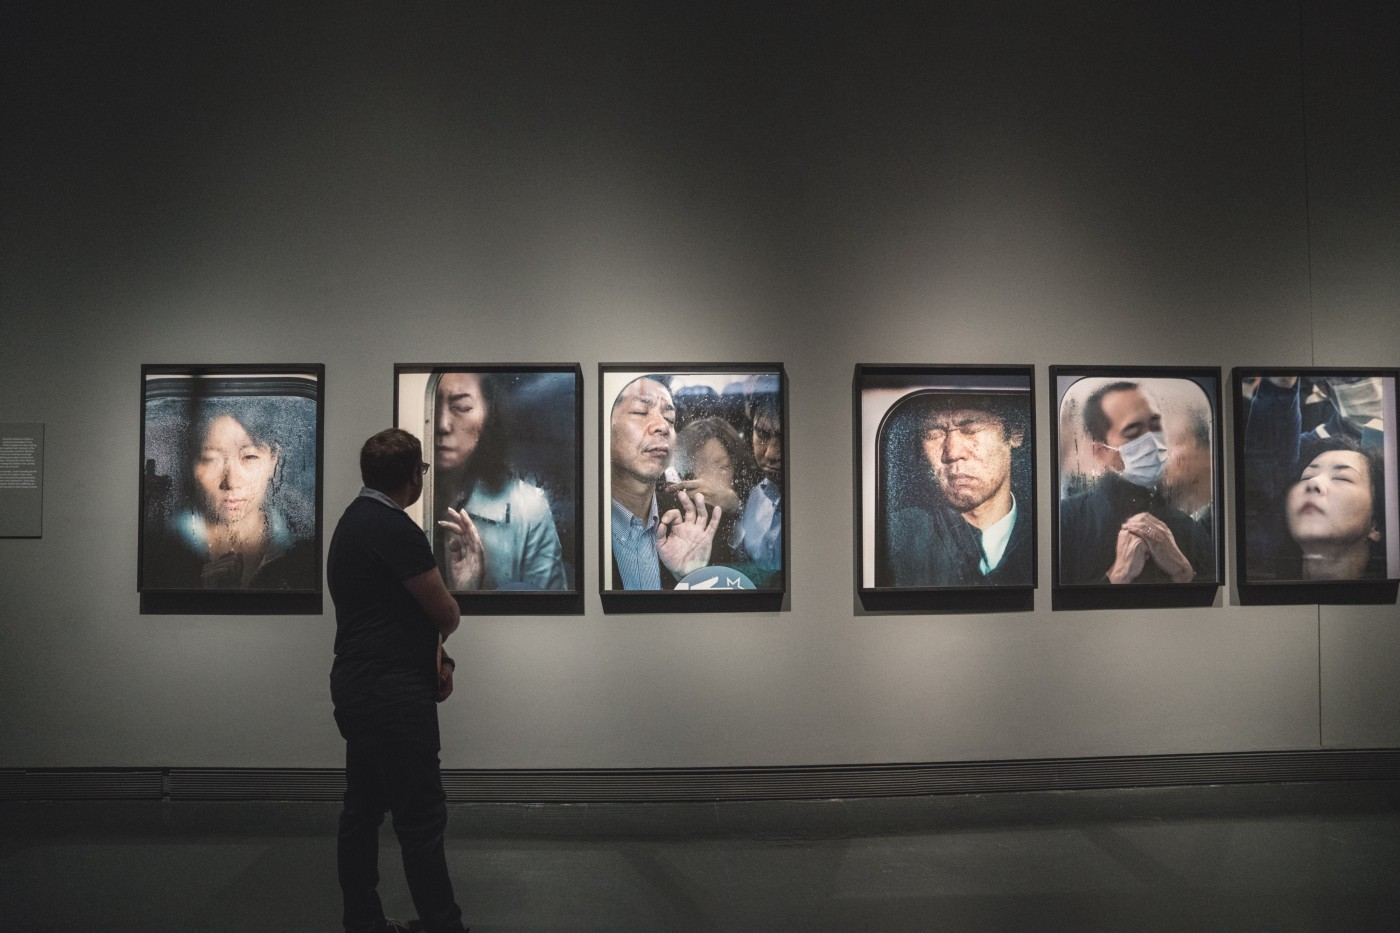 A person looks at images displayed on a wall.